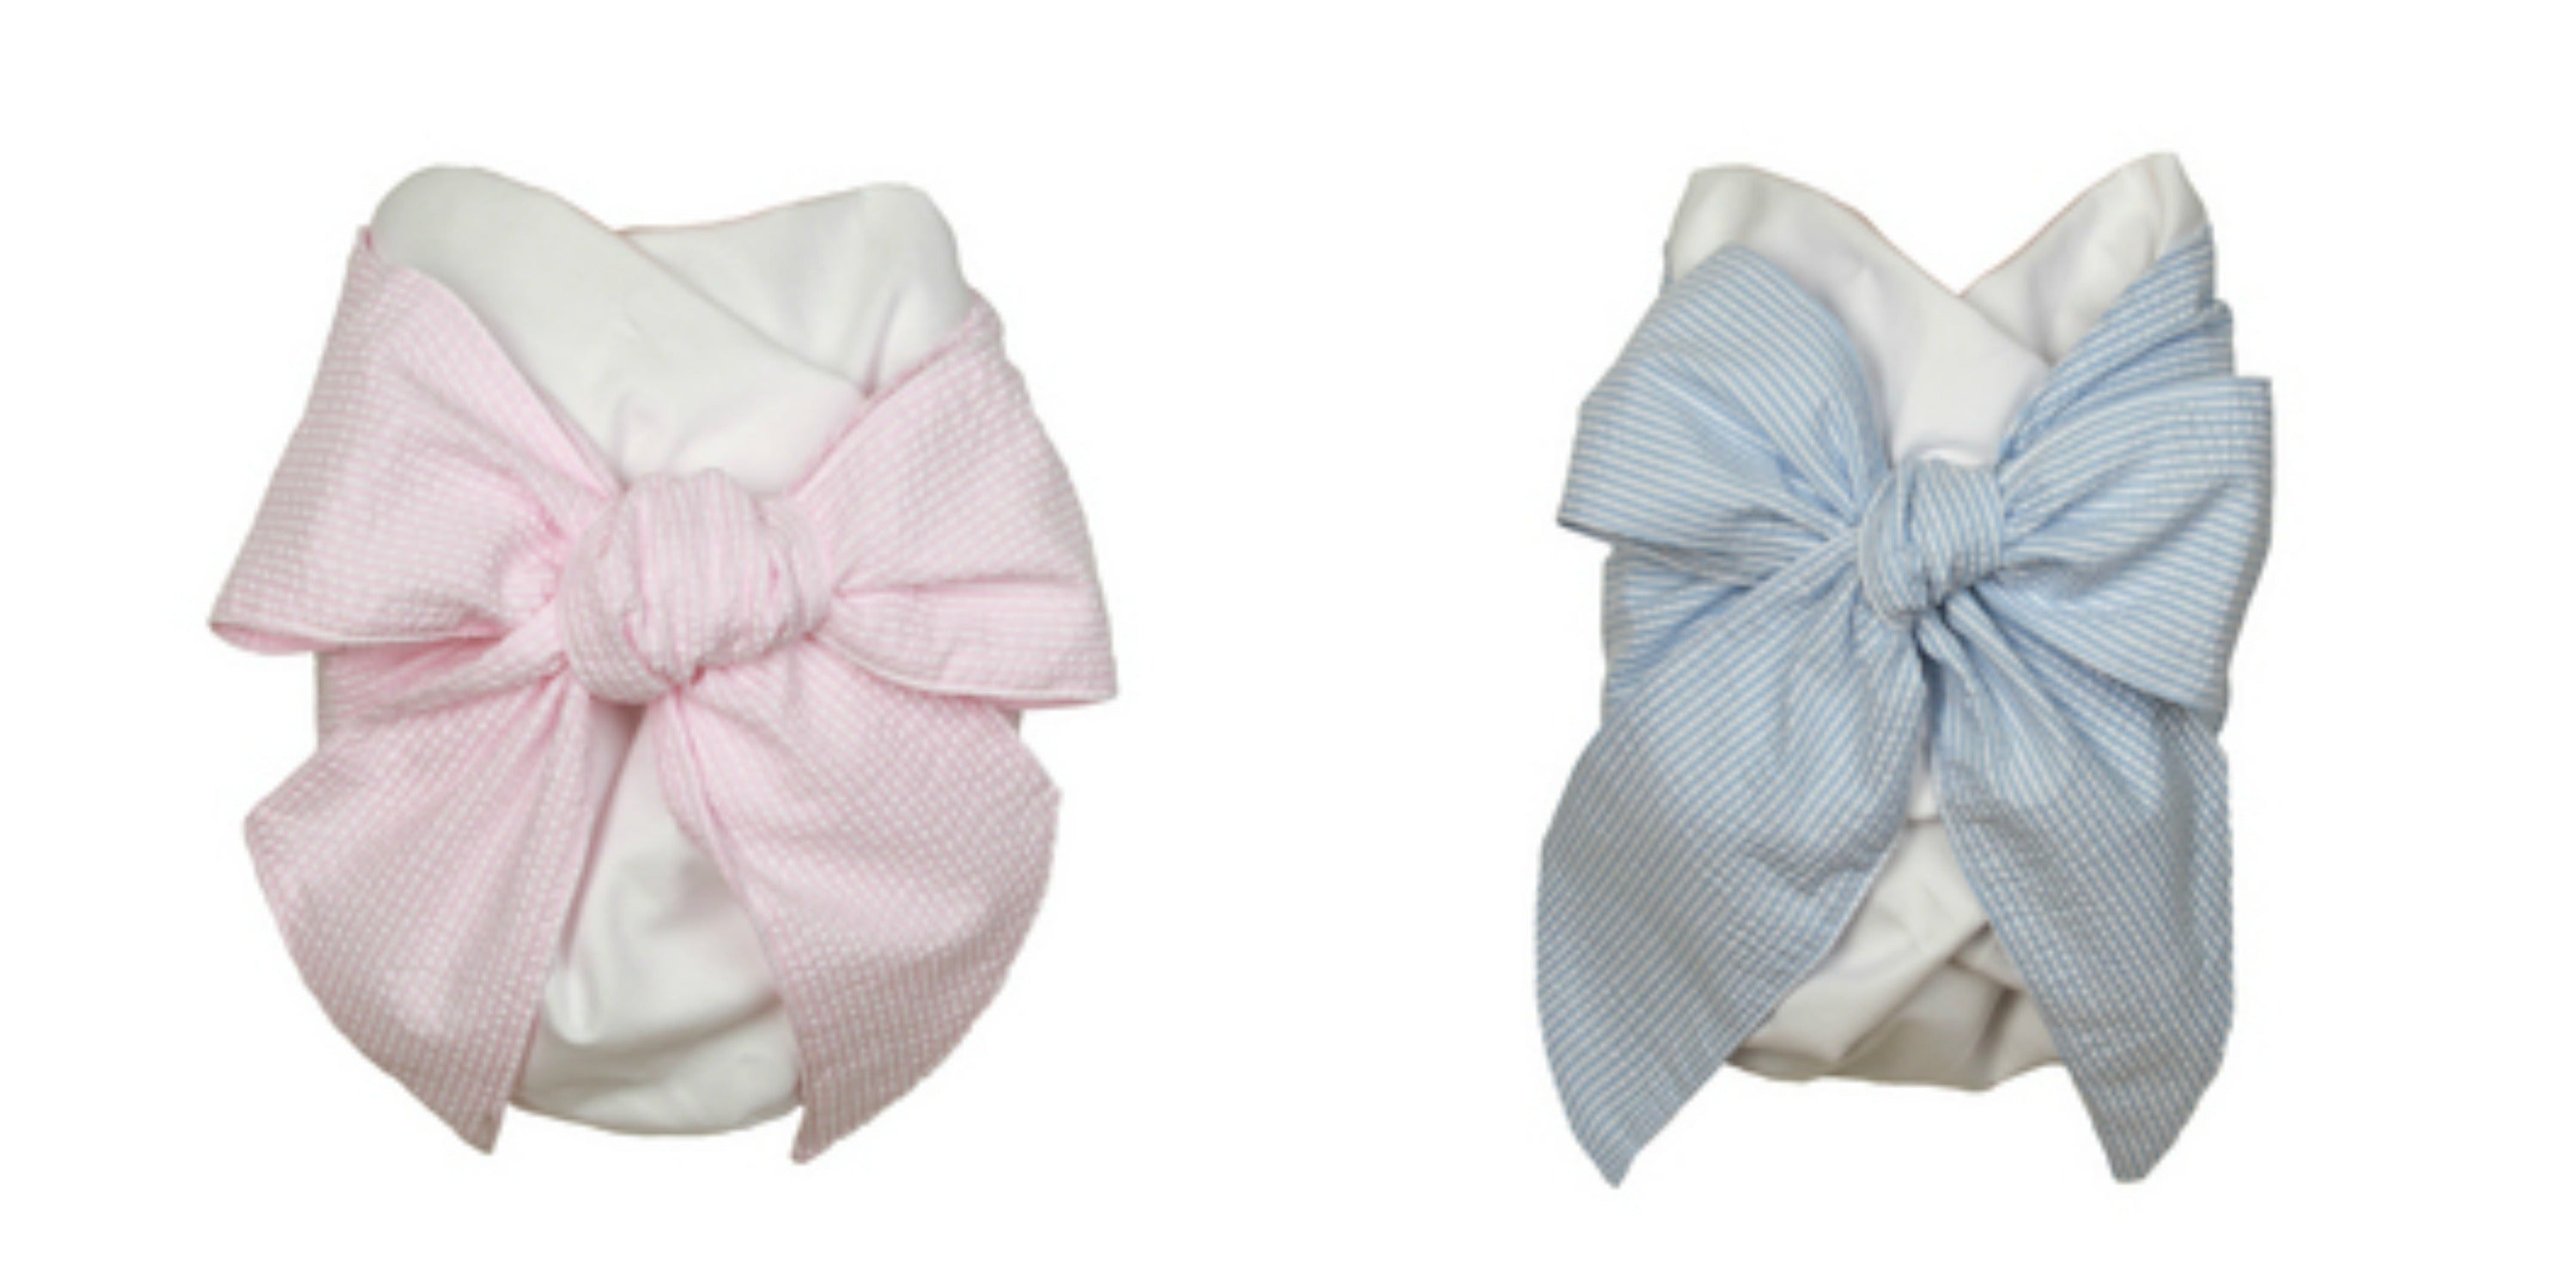 Christening Swaddle Bows